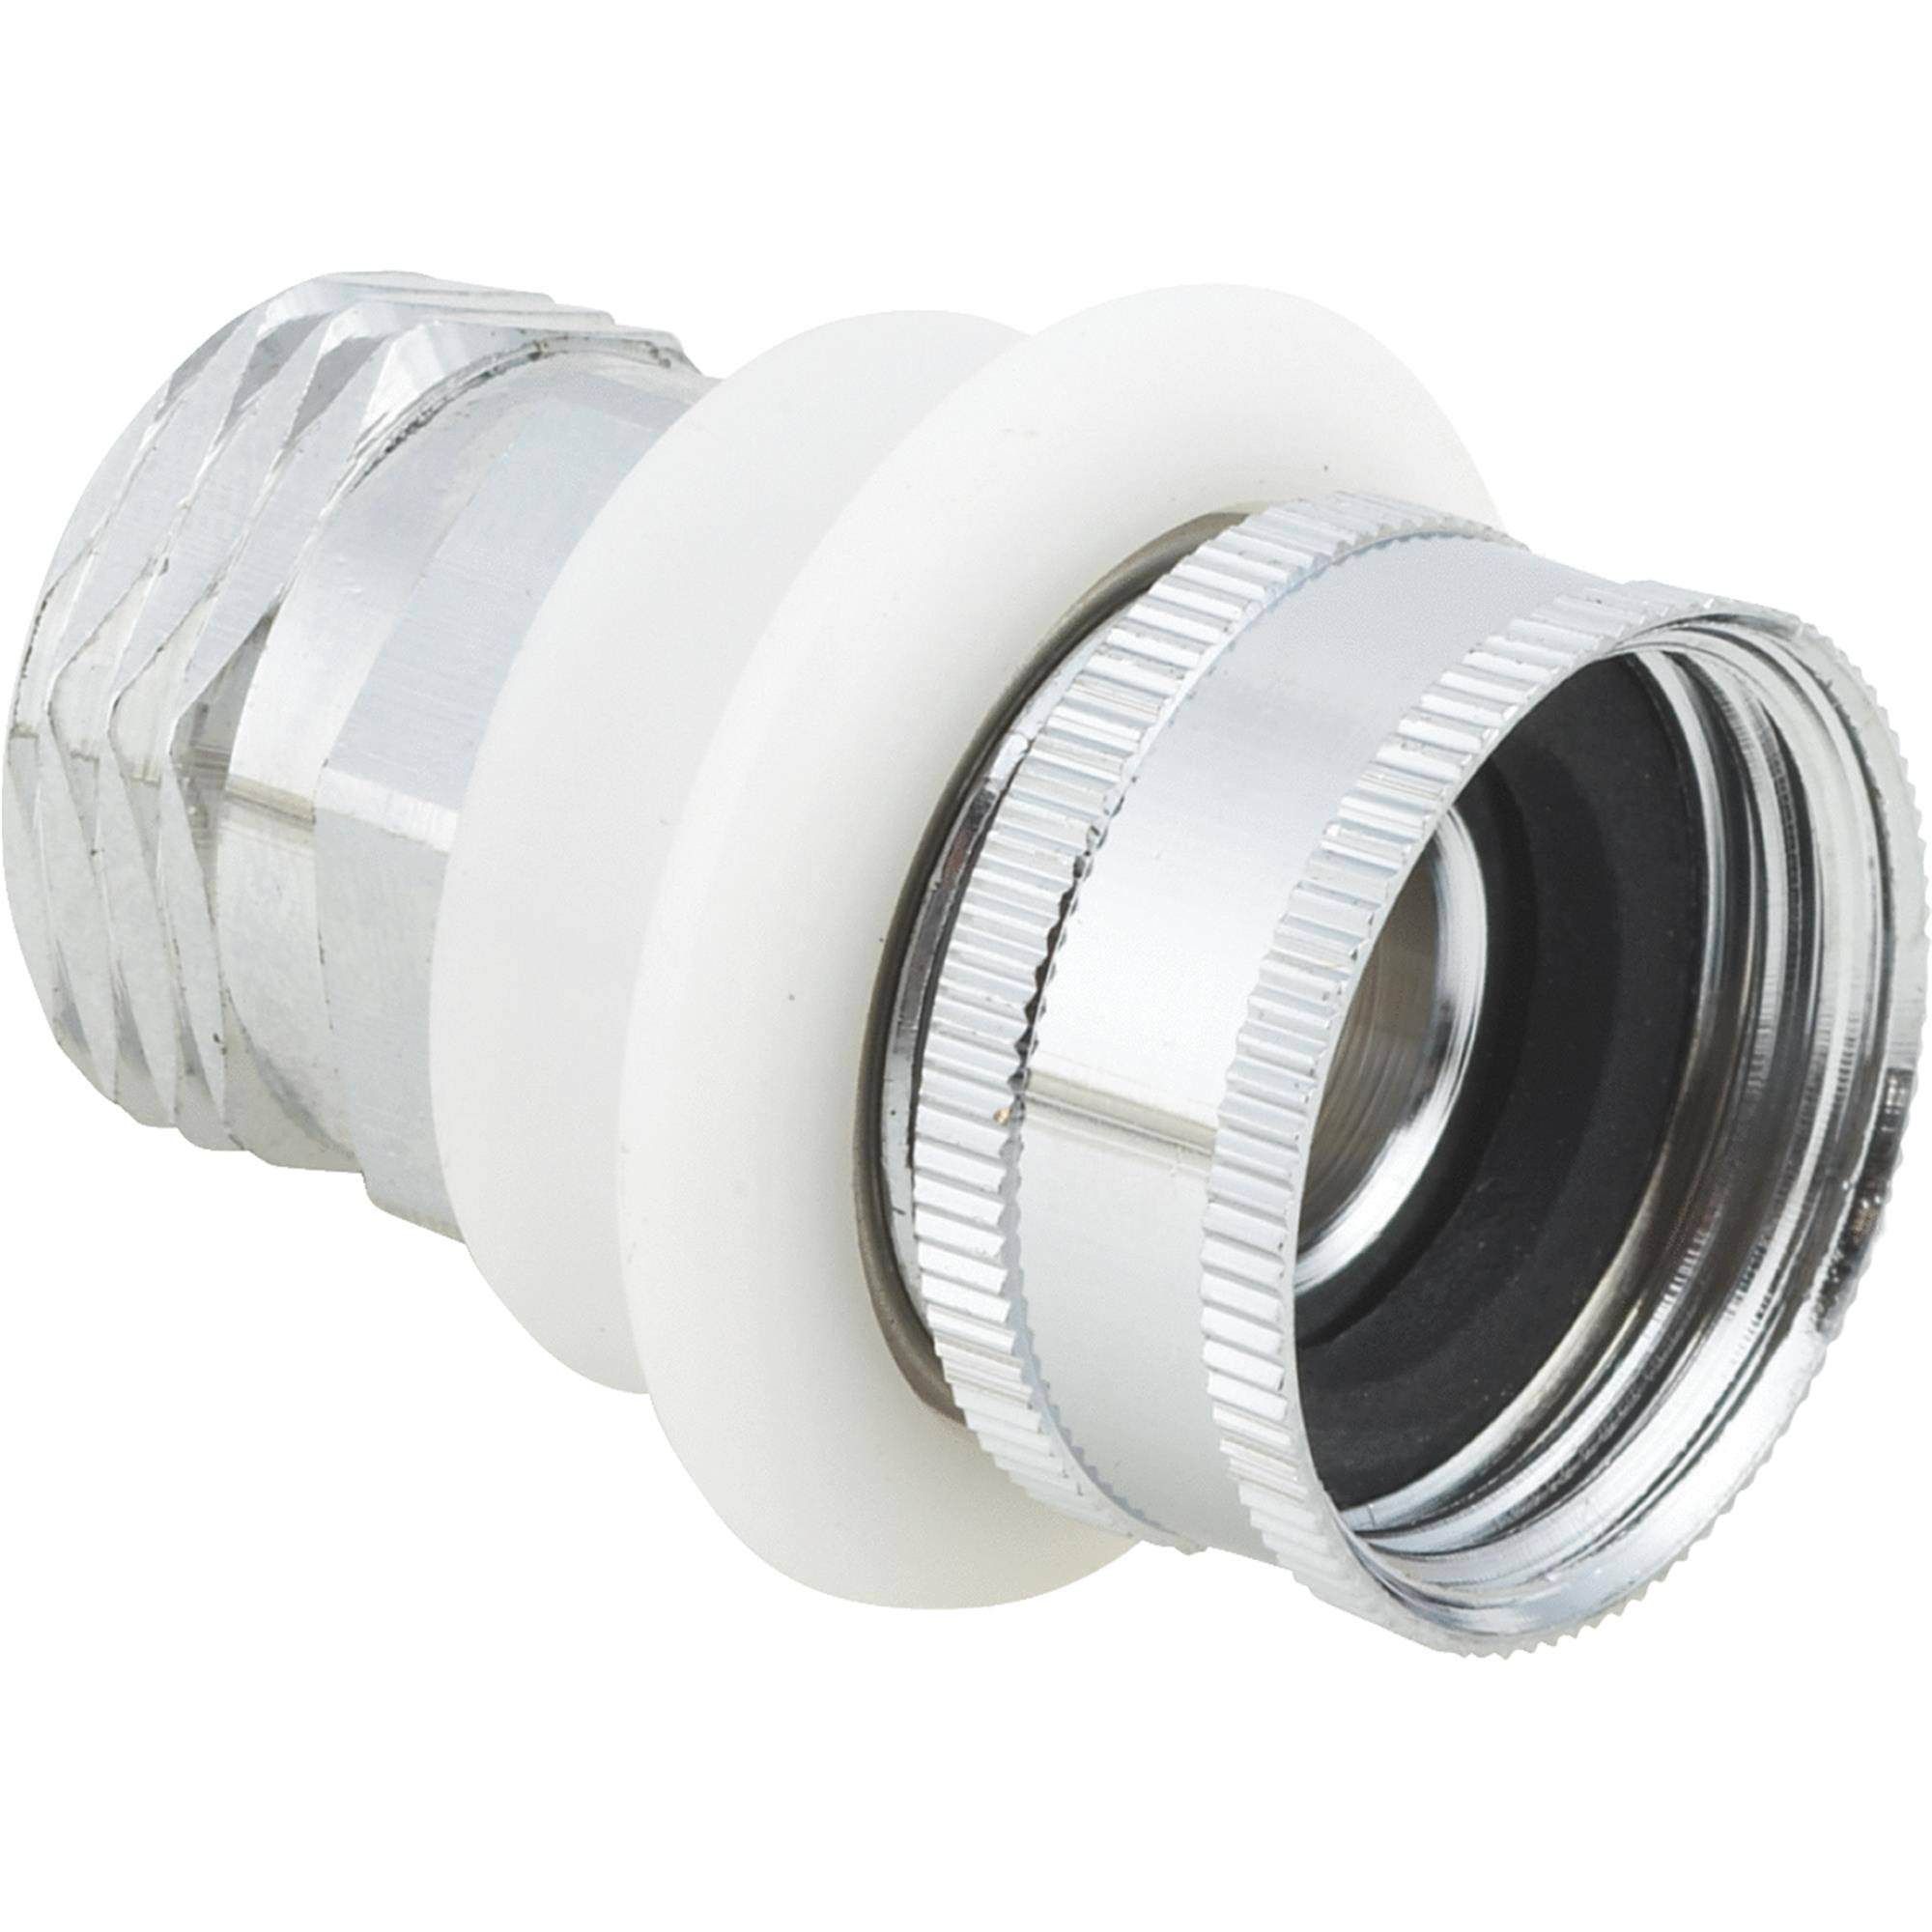 Do it Personal Shower Hose Connector Faucet Adapter - Low Lead